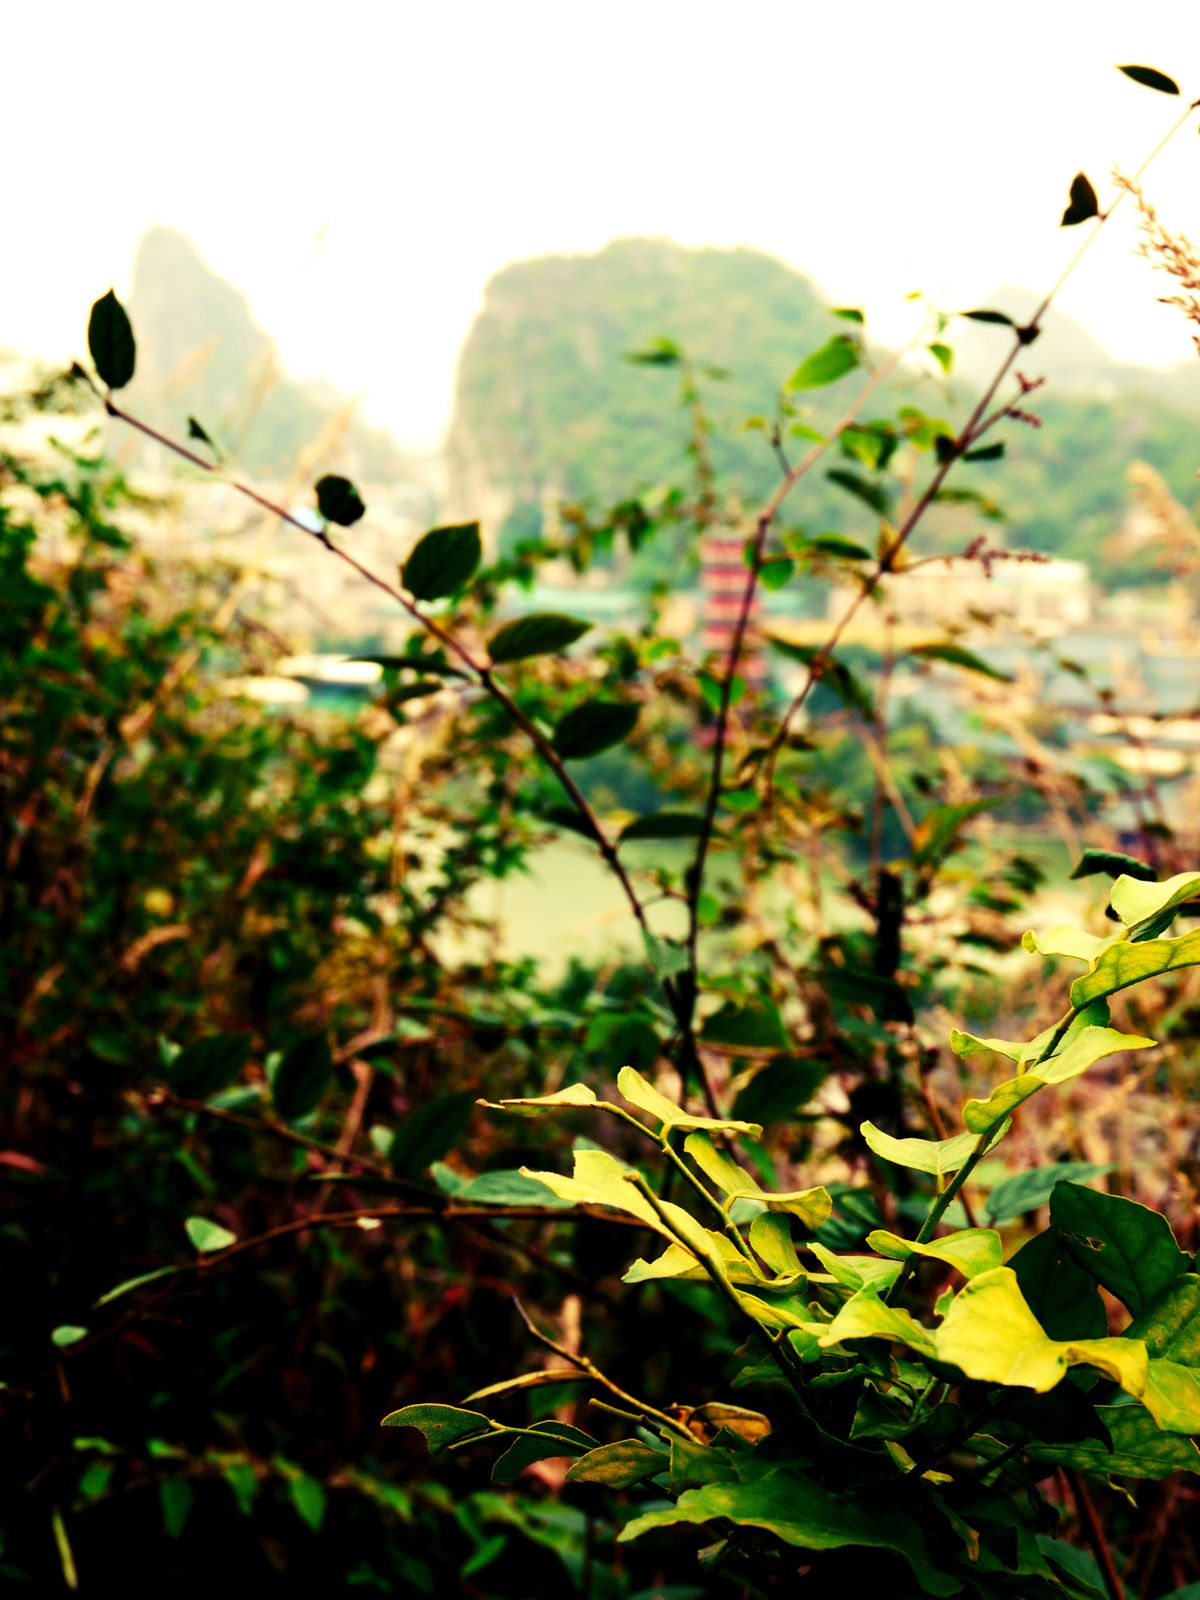 Guilin (Guangxi) - China